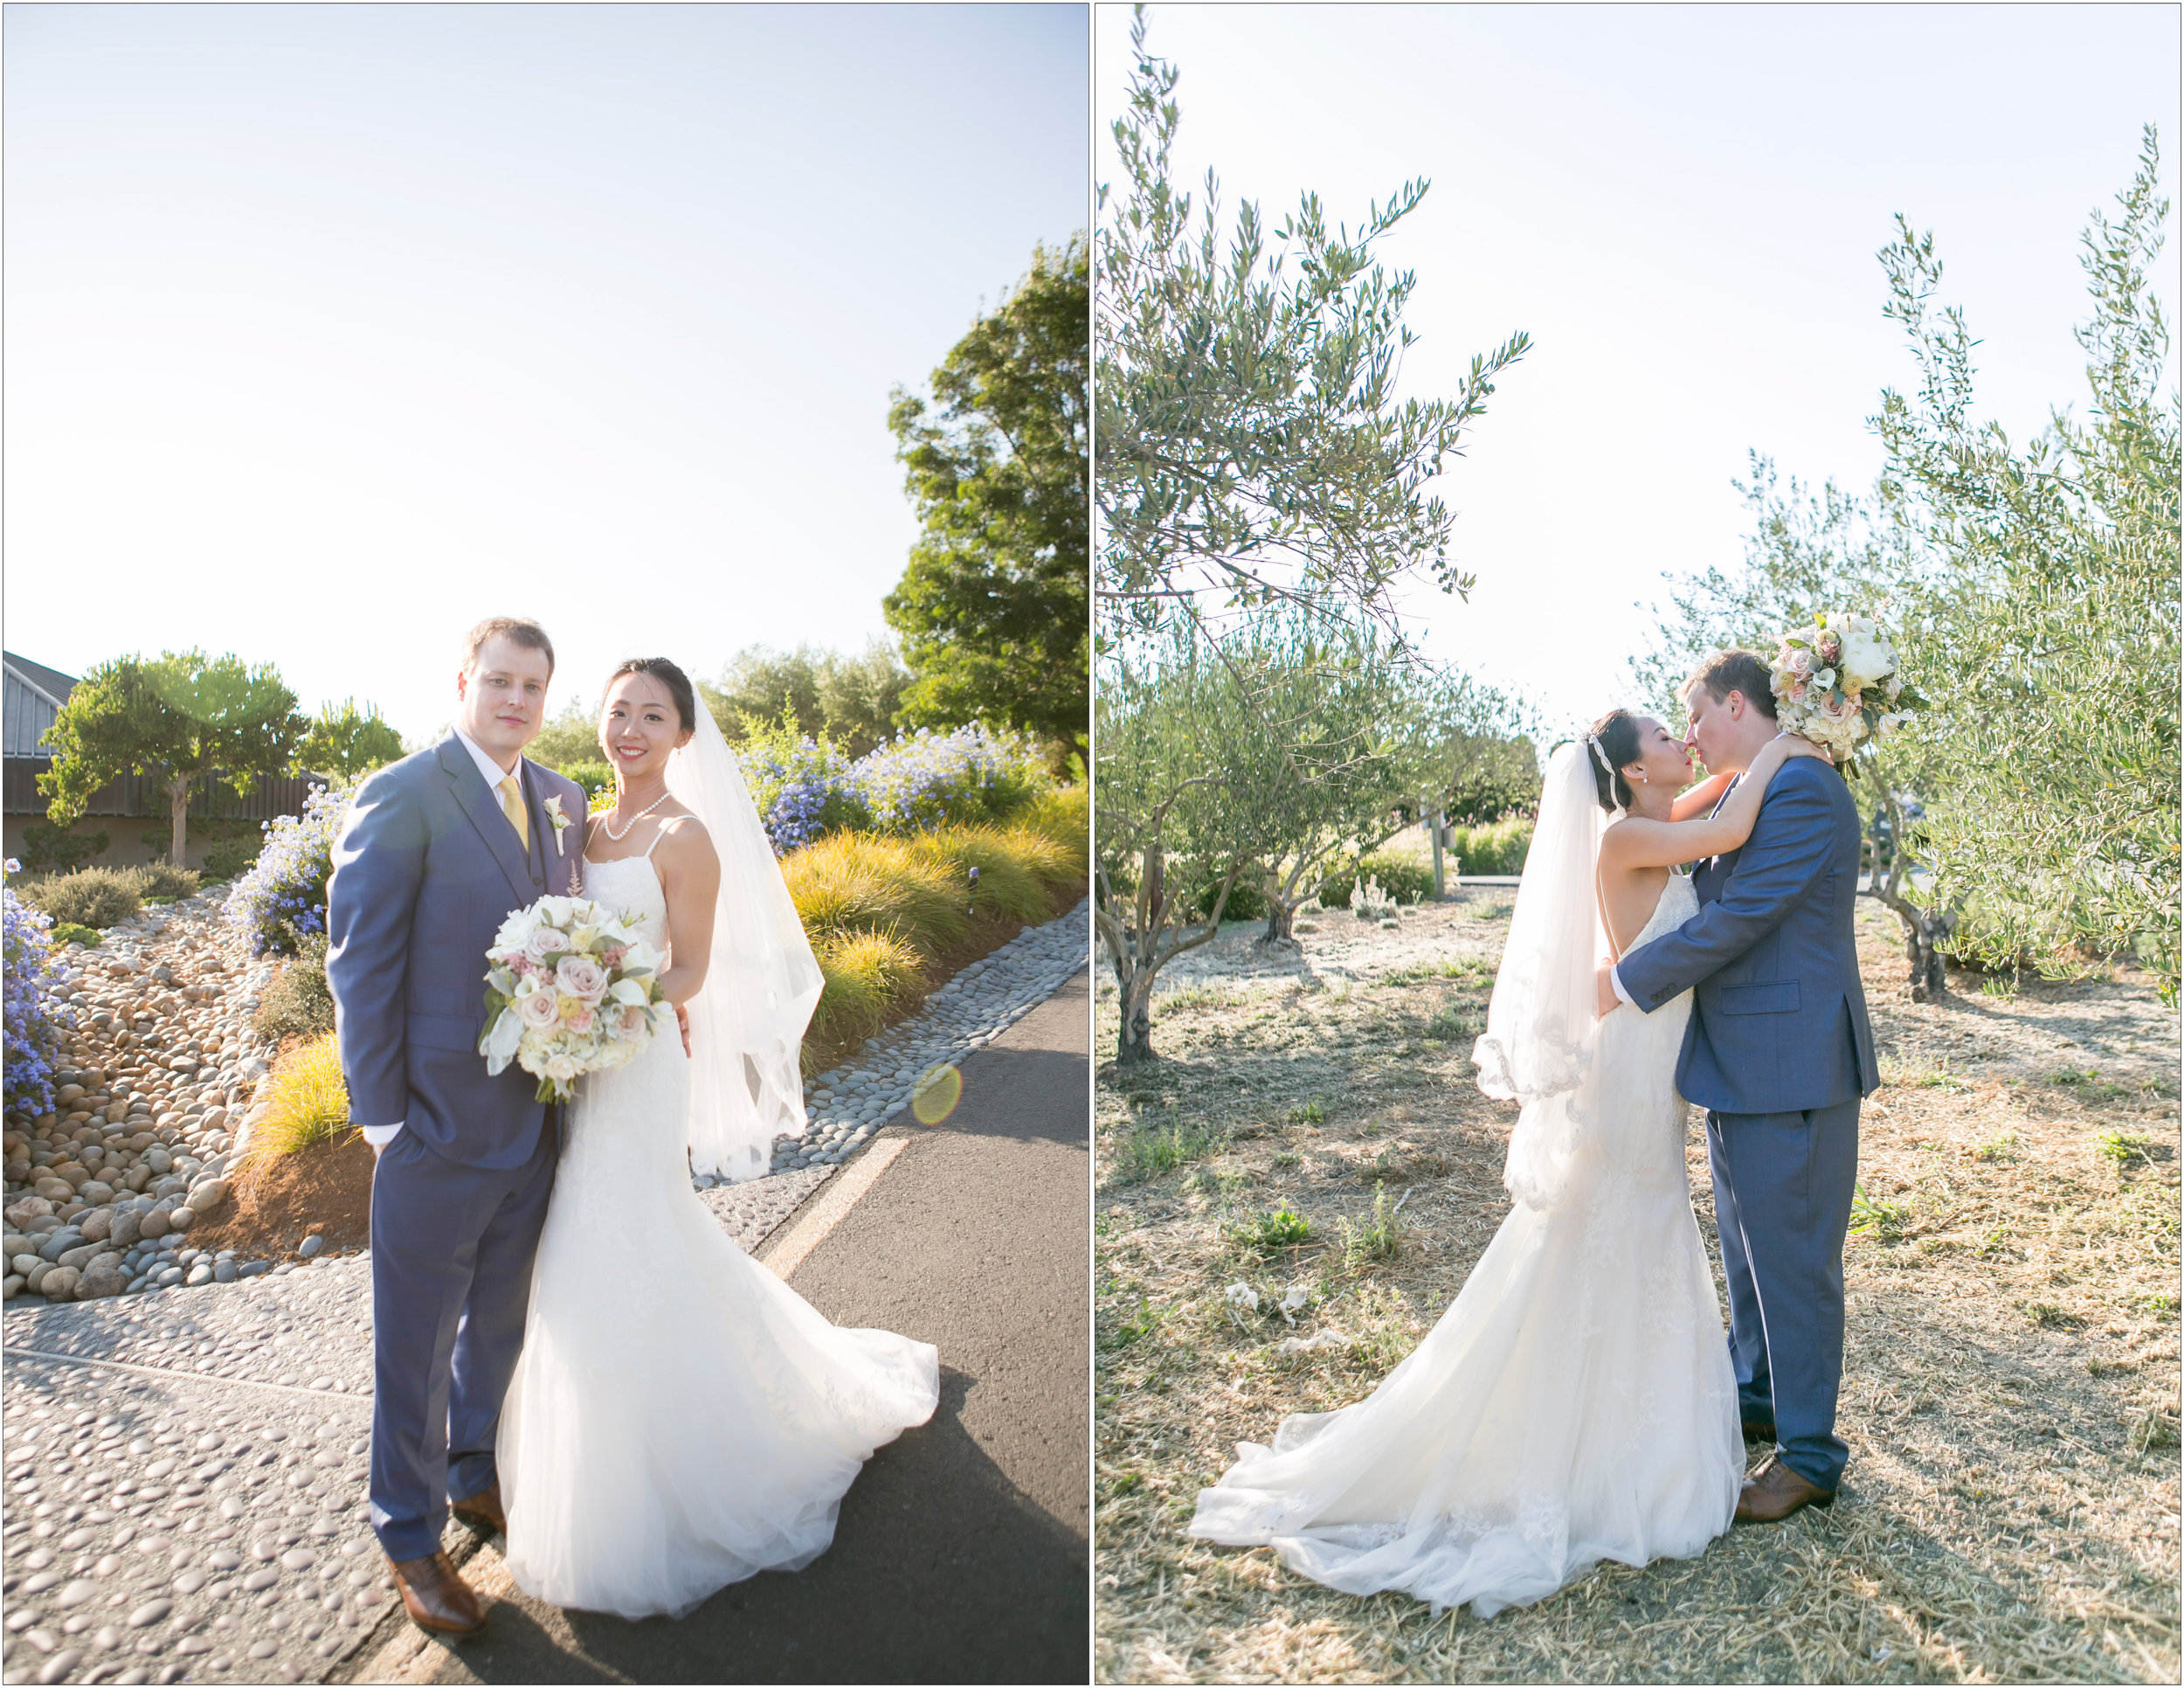 Napa wedding photographer - Michelle Chang Photography